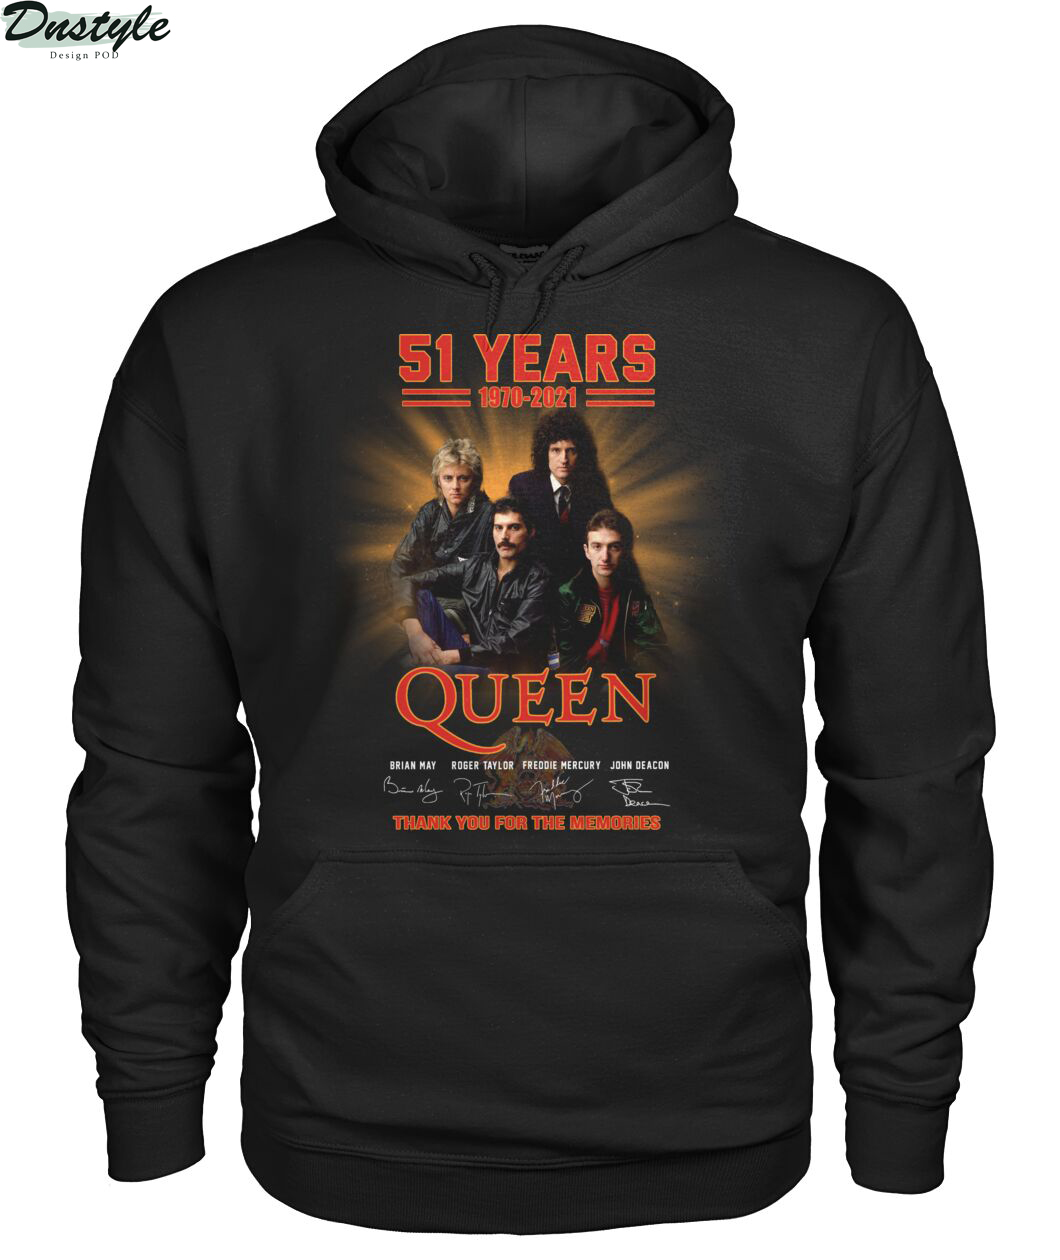 51 years 1979 2021 Queen thank you for the memories hoodie